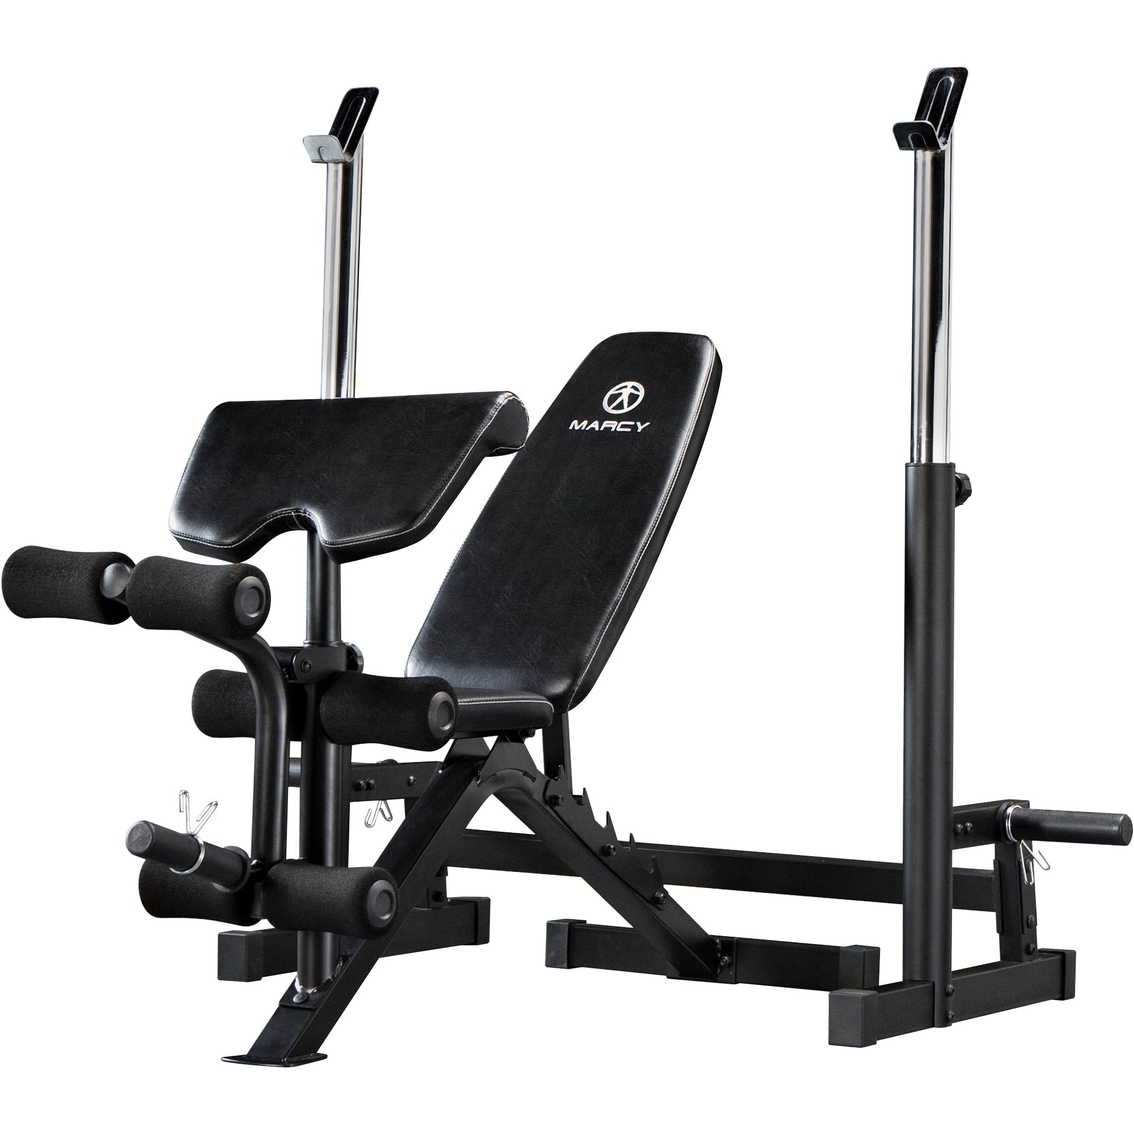 Impex Powerhouse Weight Bench 28 Images Impex Club Powerhouse 740 Bench Press And Olympic